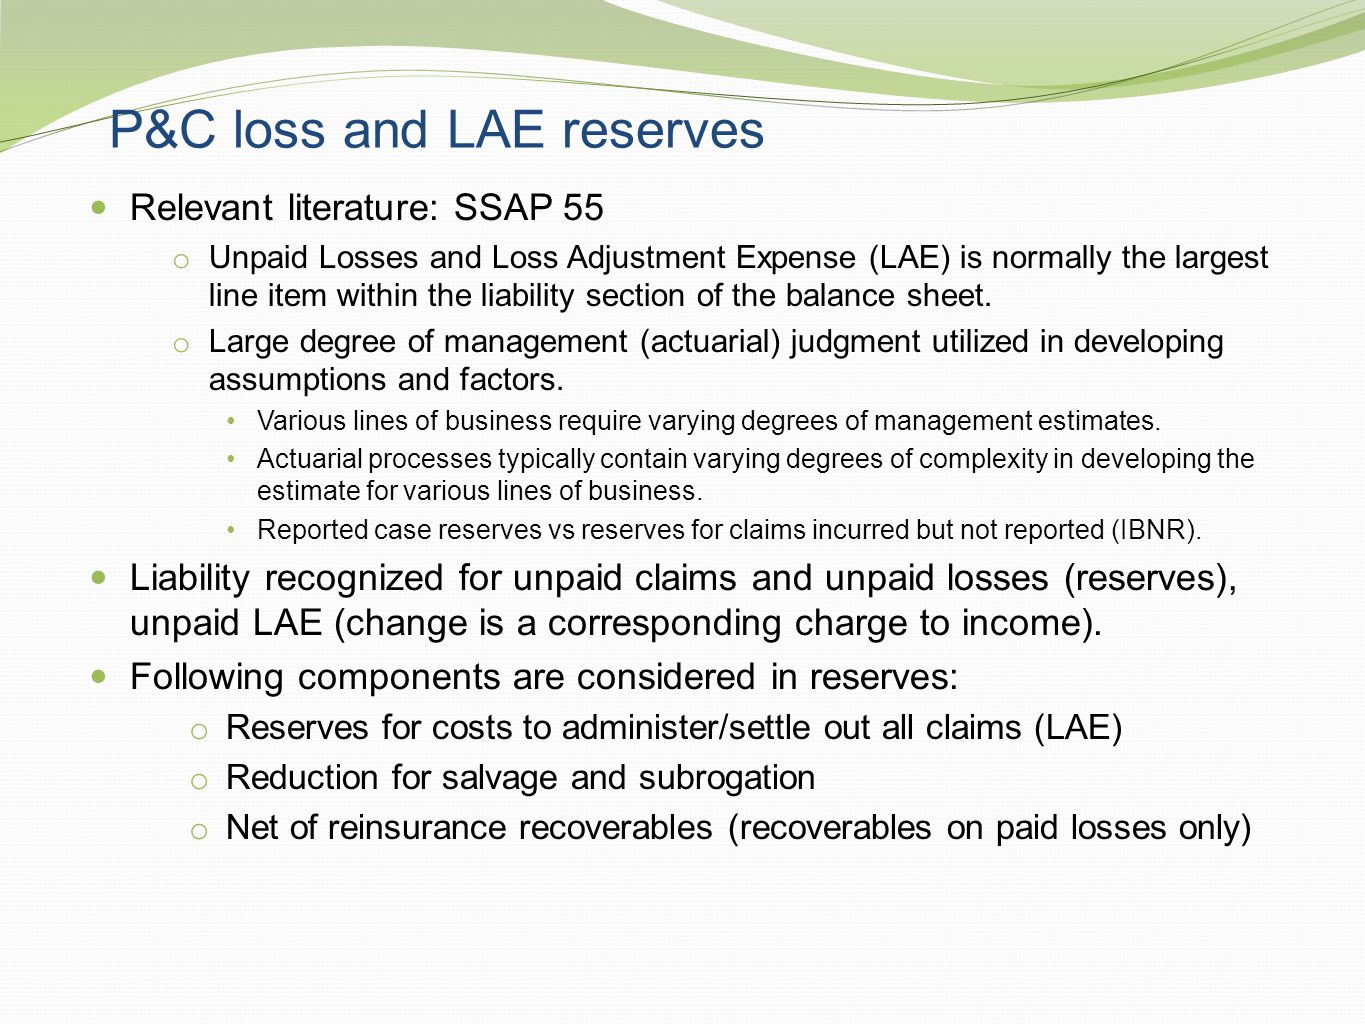 P&C loss and LAE reserves